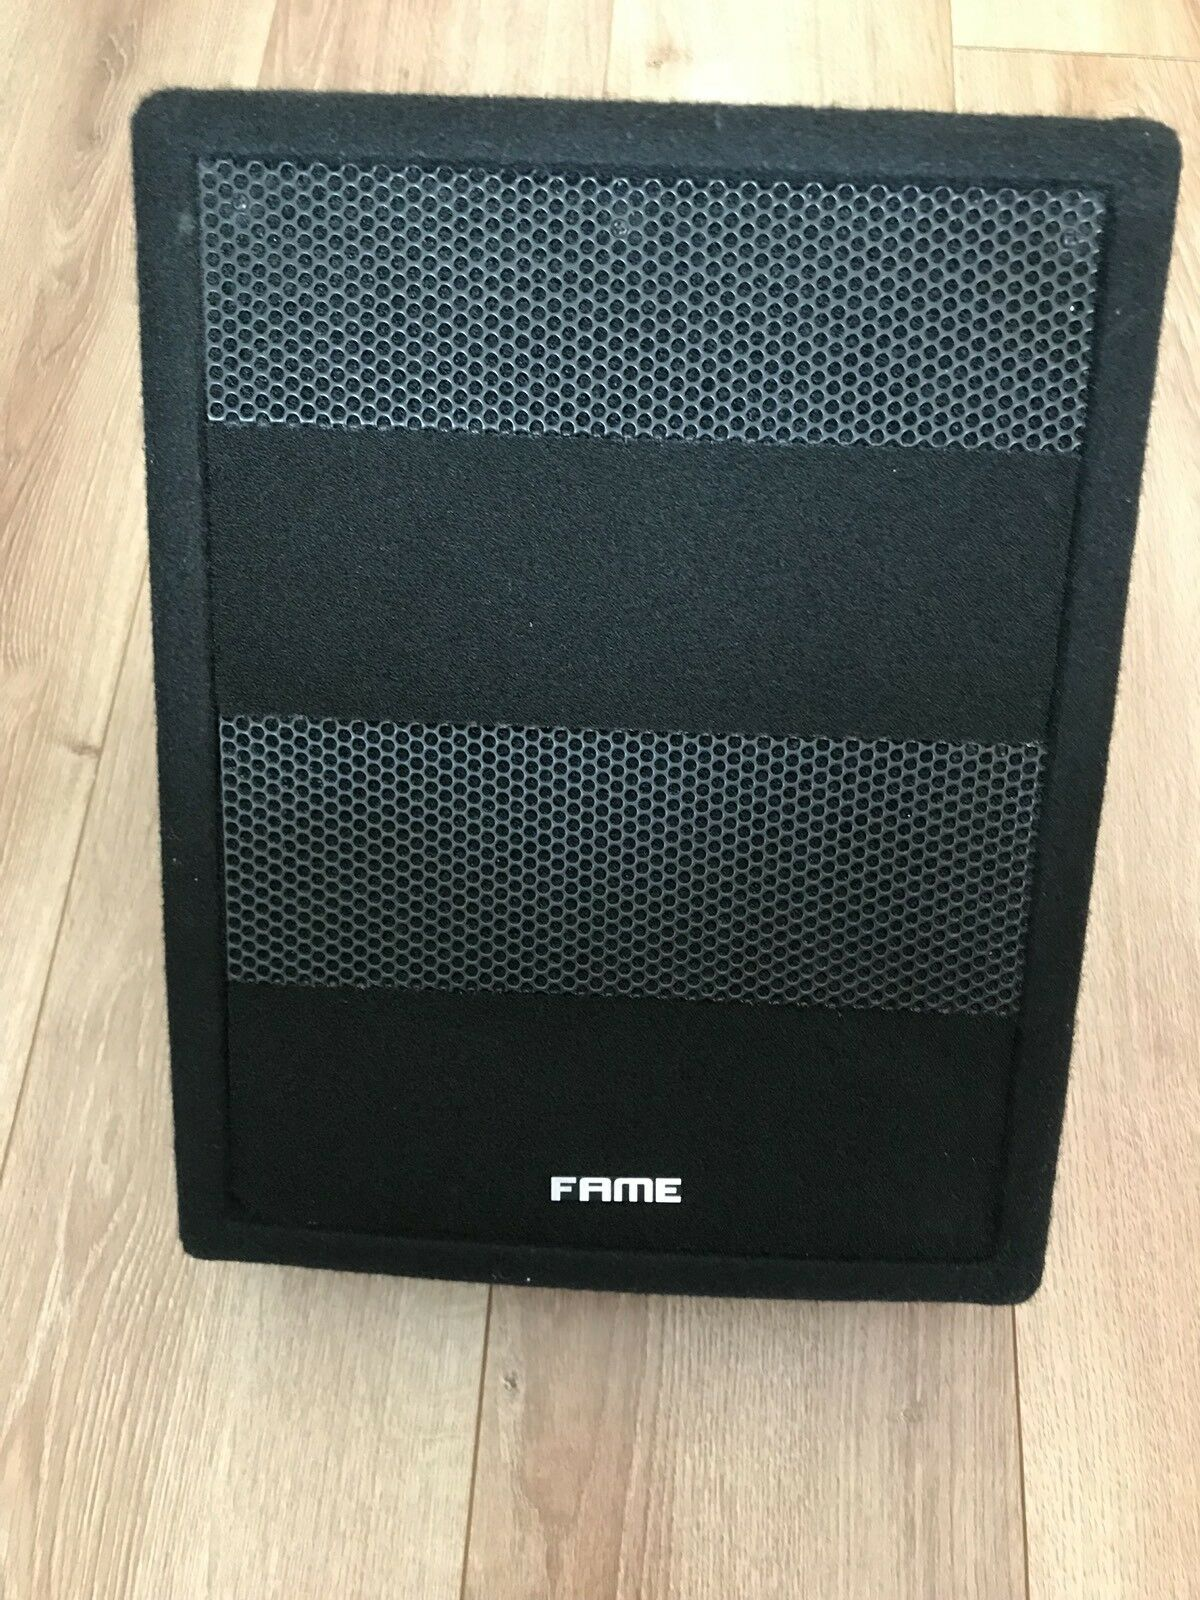 FAME SM-80A brand new unused